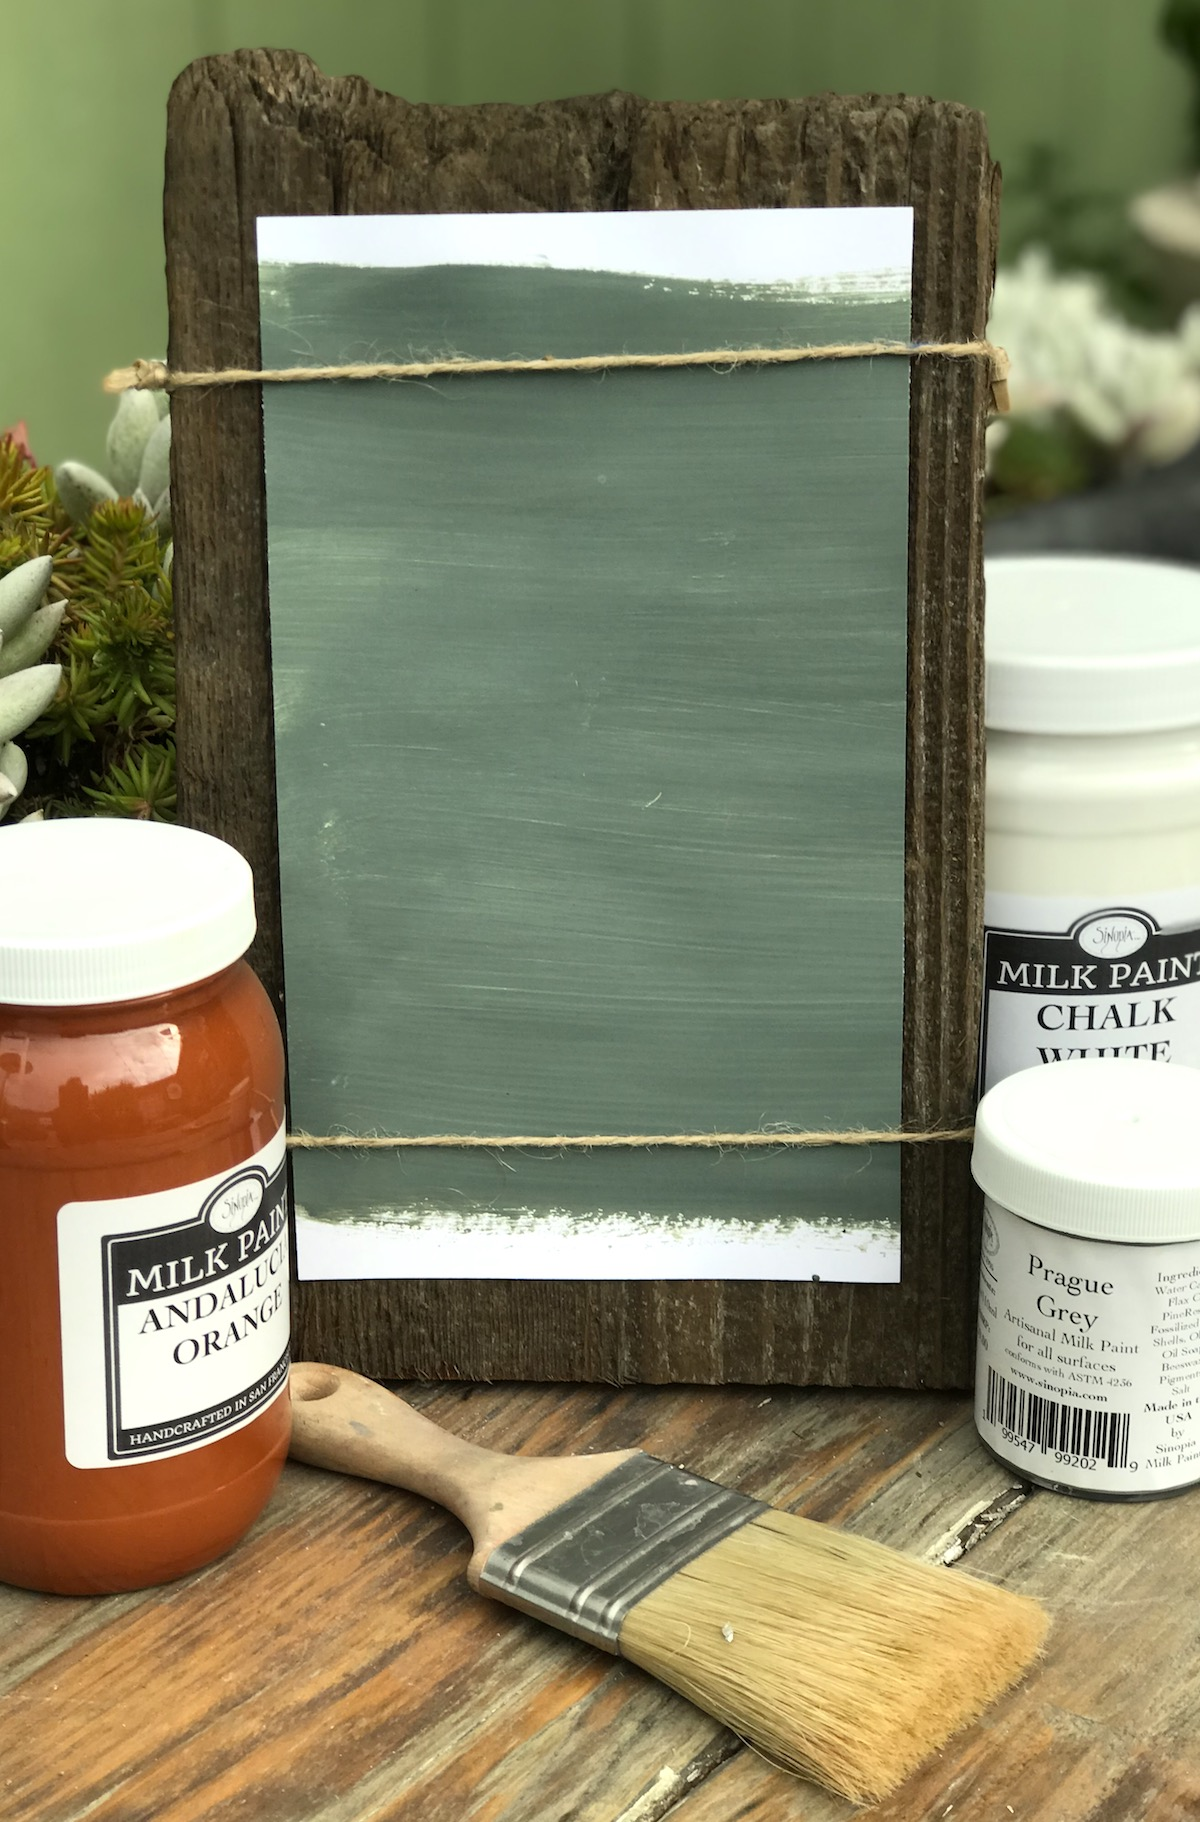 All Natural Artisanal Milk Paint (Casein) Bohemia Grey